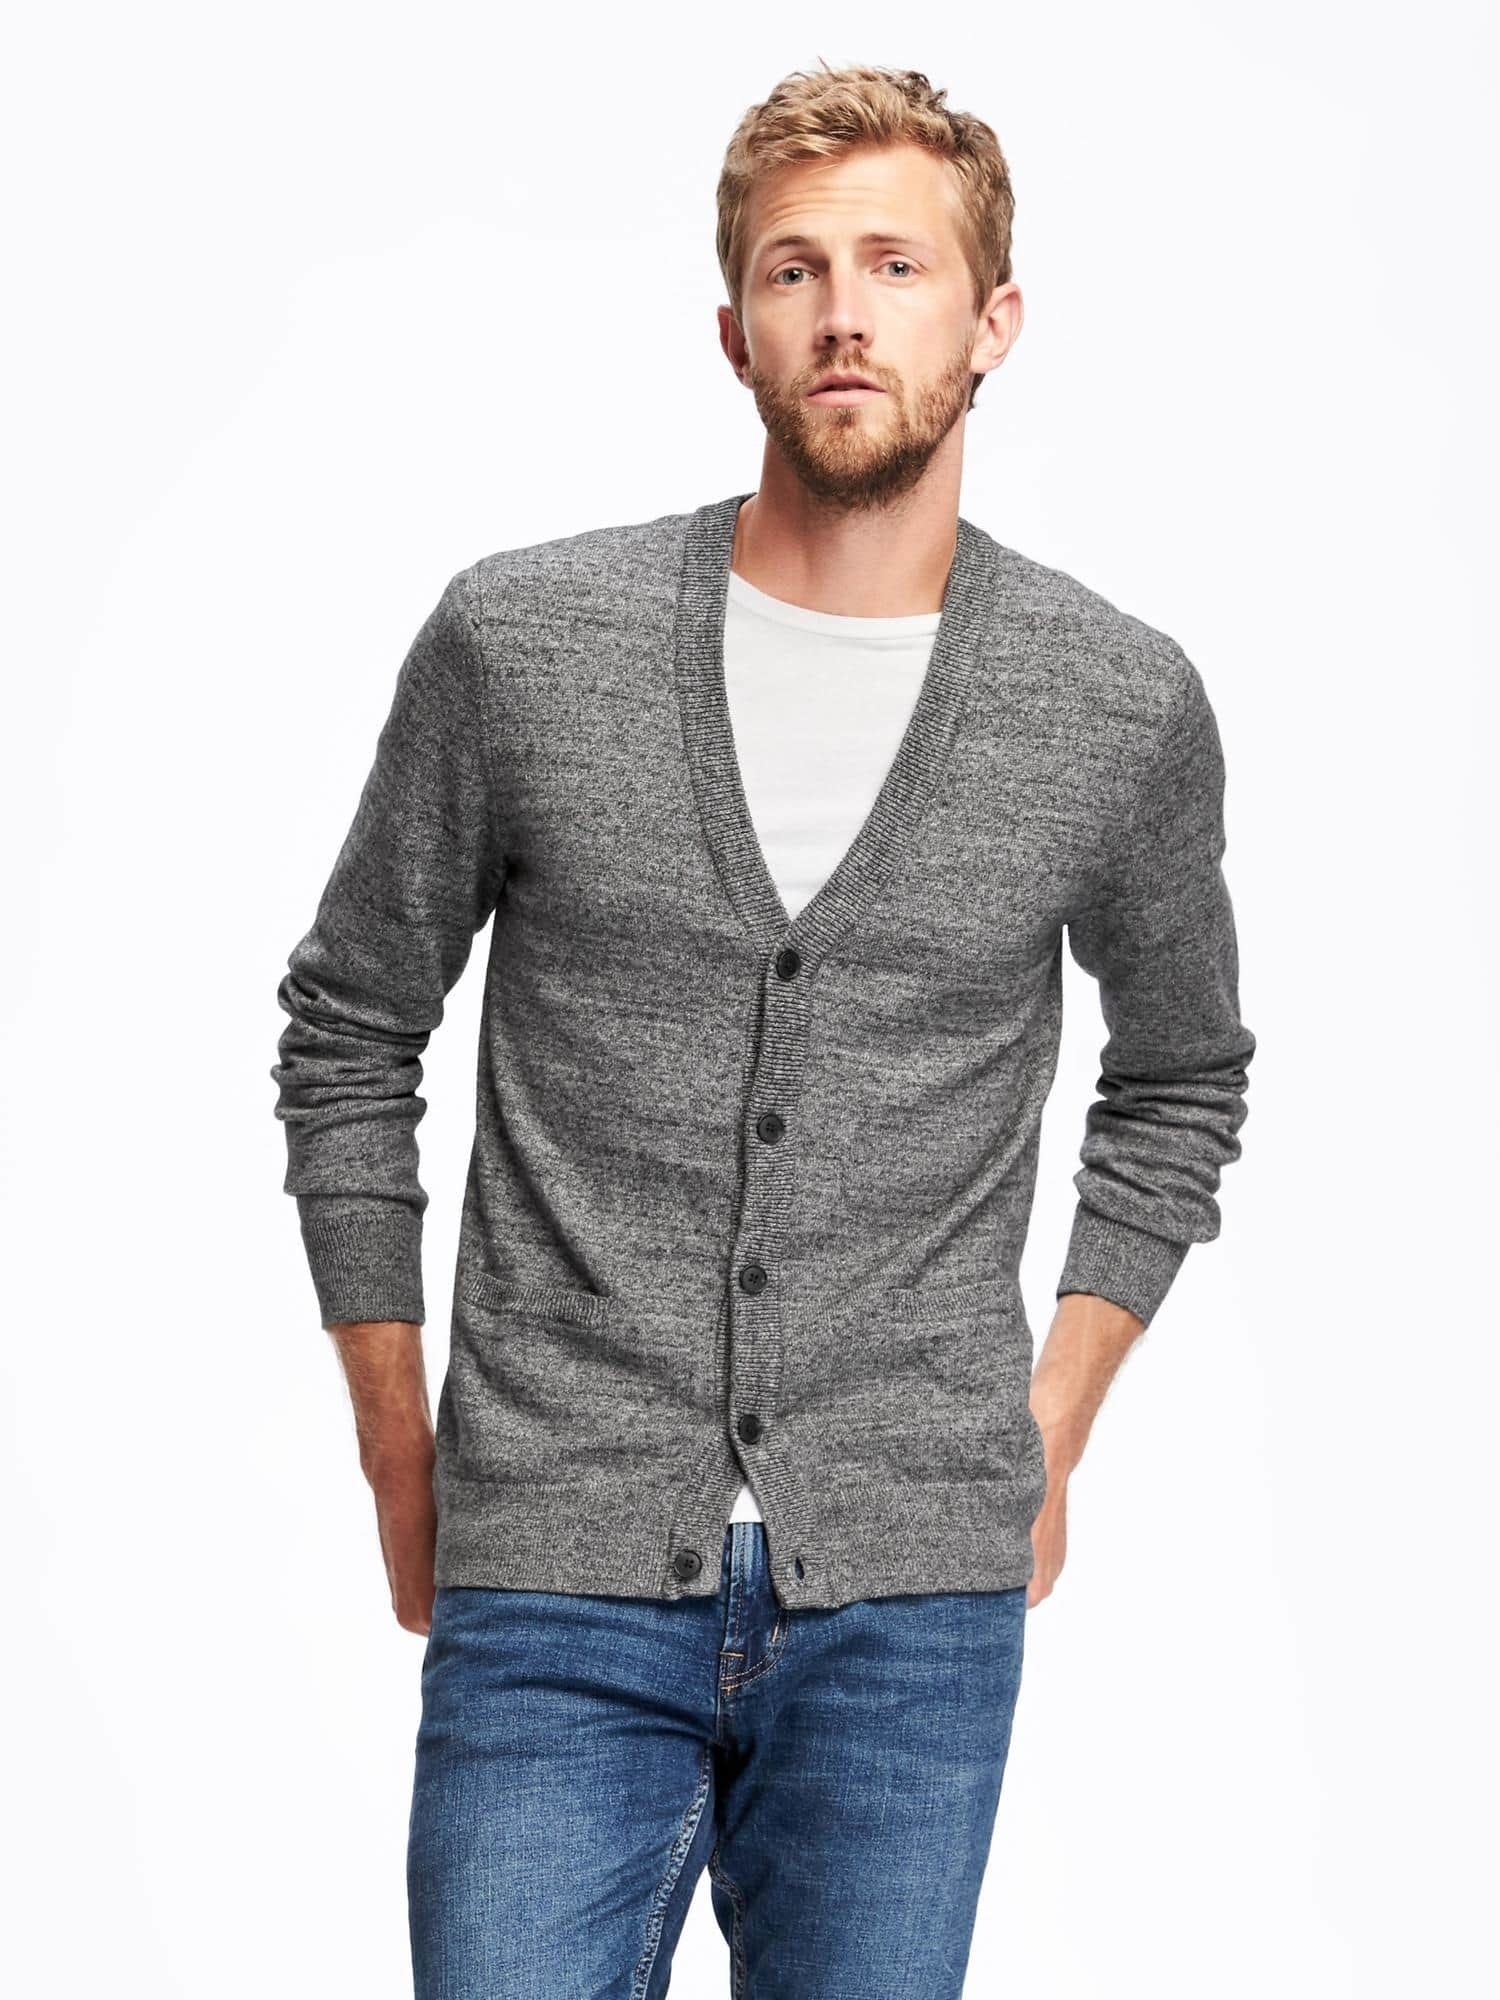 How To Wear a Grey Cardigan With a White Crew-neck T-shirt | Men's ...